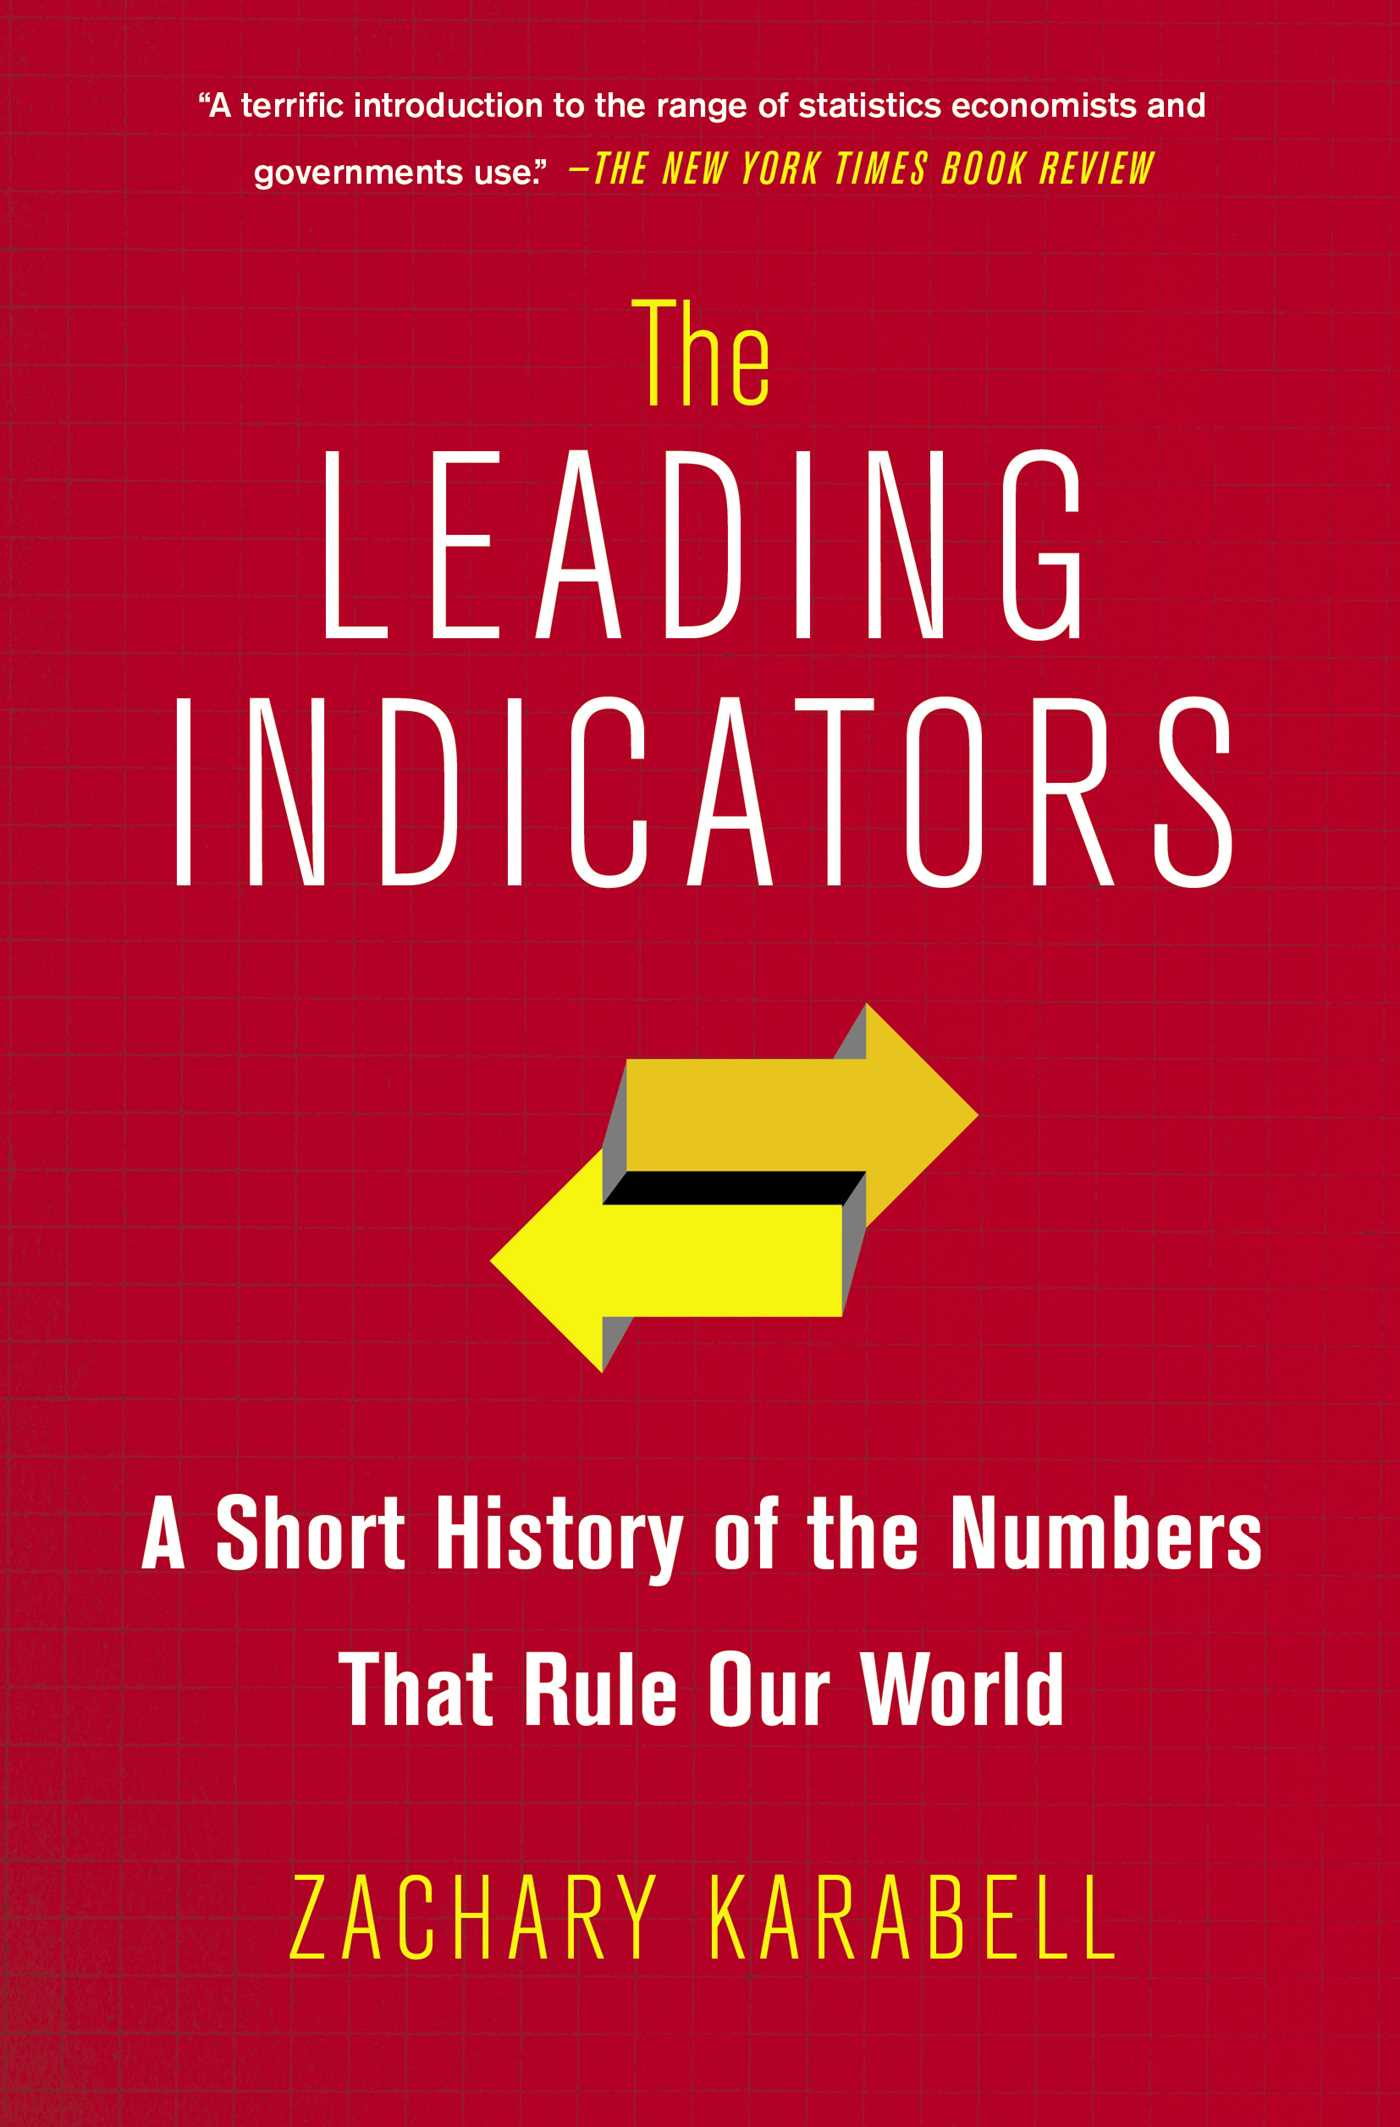 Leading-indicators-9781451651225_hr